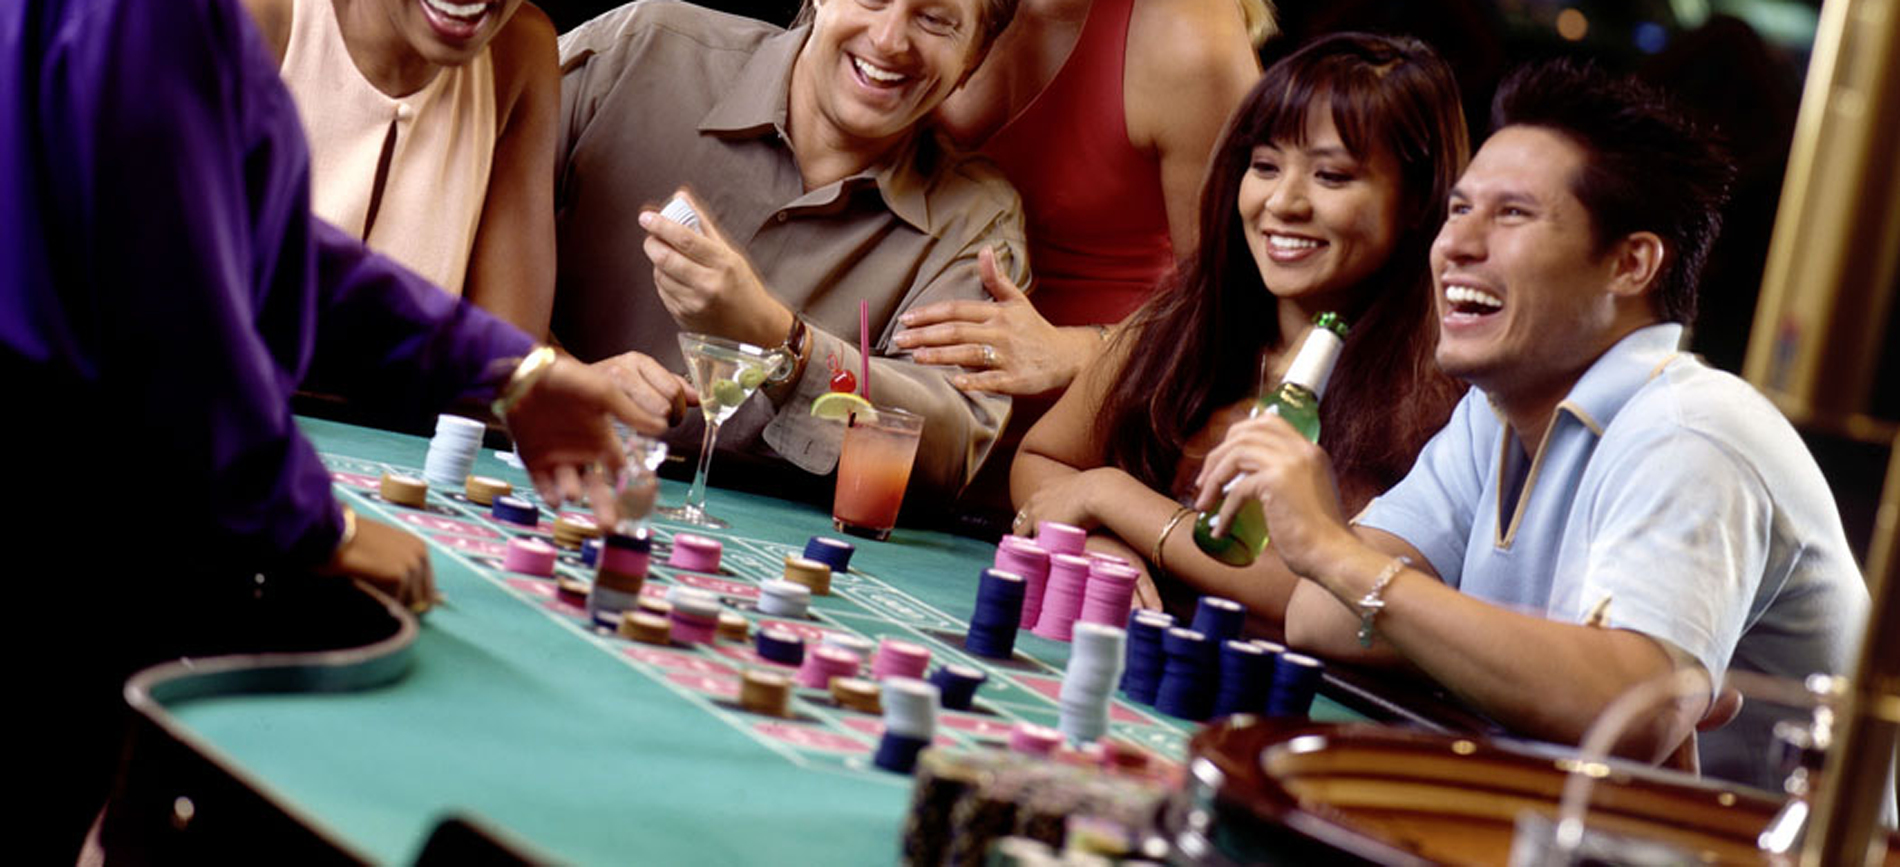 What are the free drinks in vegas casinos casinos to play for fun